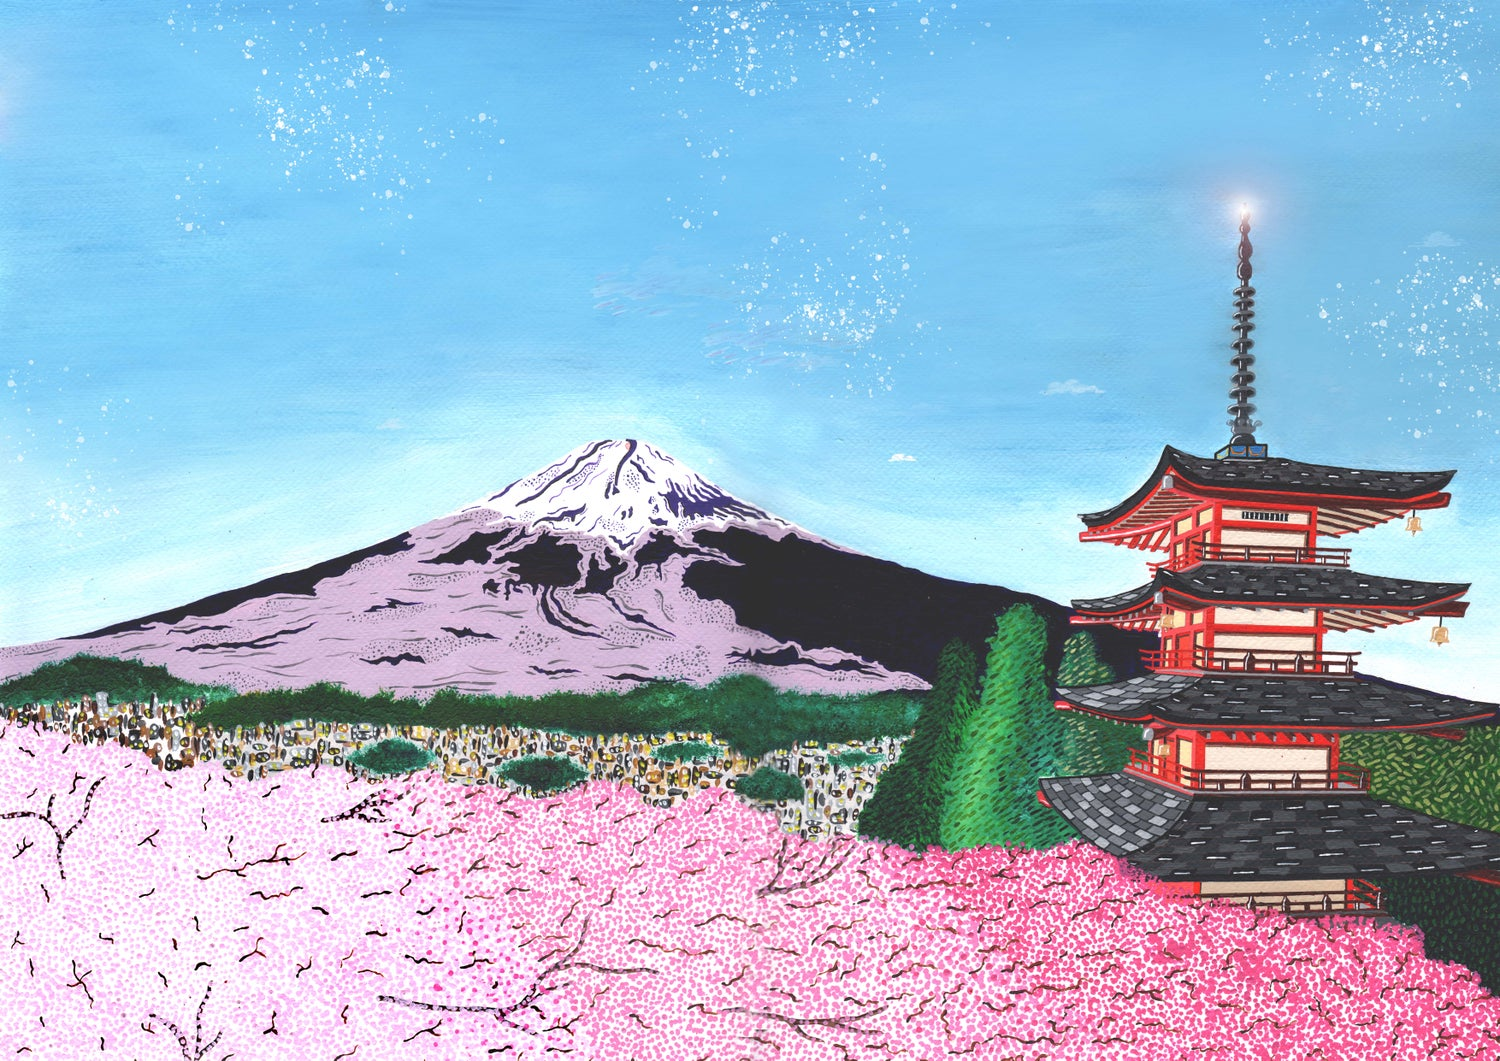 Image of View of Mount Fuji from Chureito Pagoda